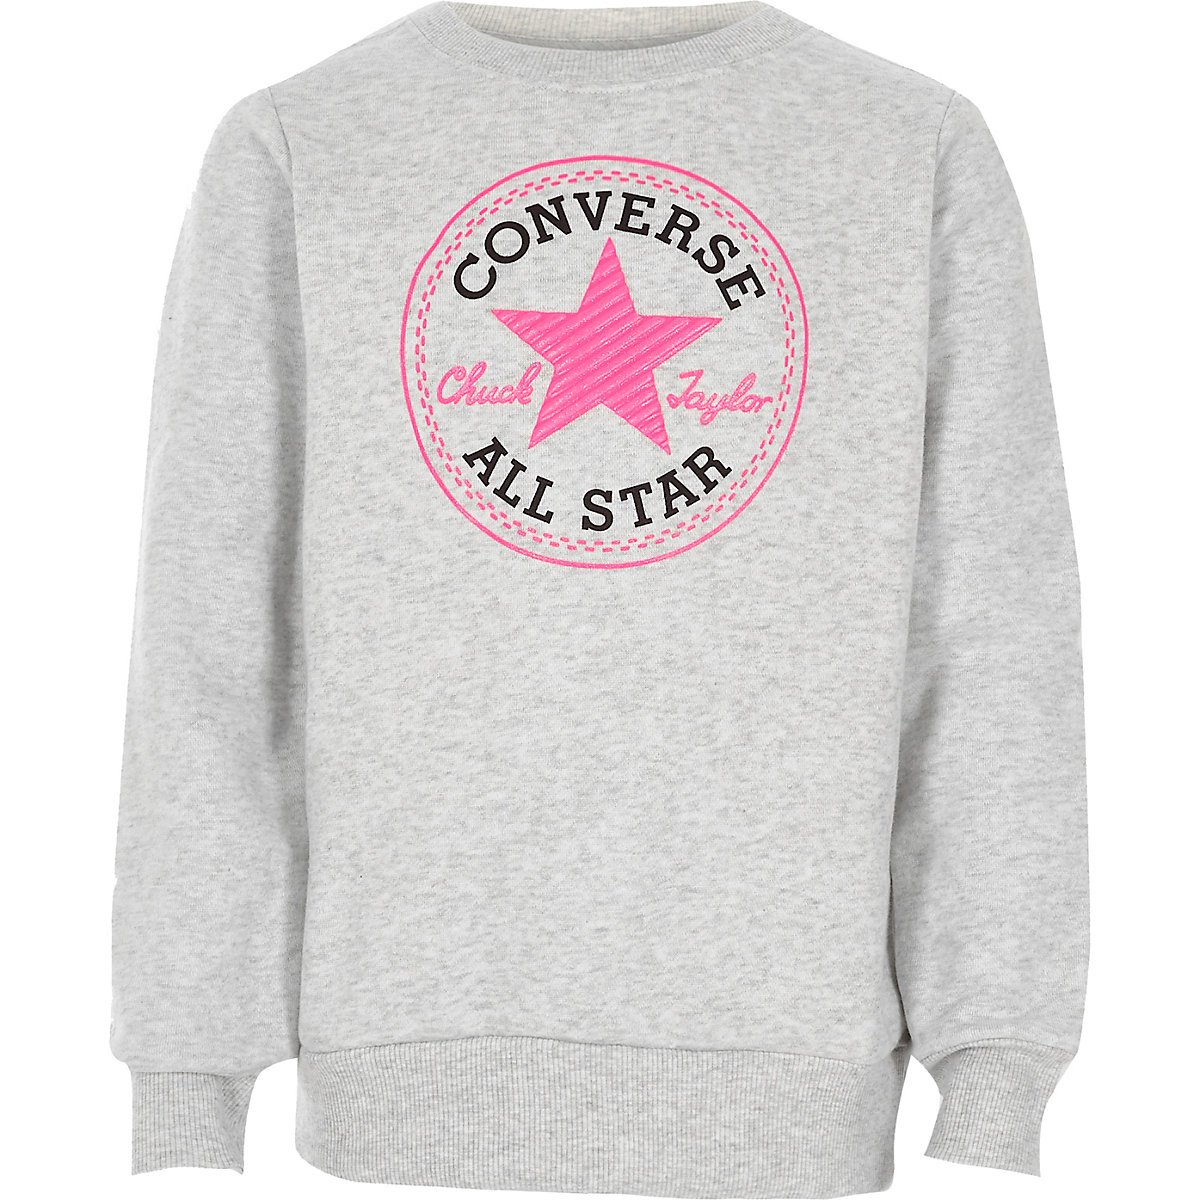 Girls Converse grey crew neck sweatshirt